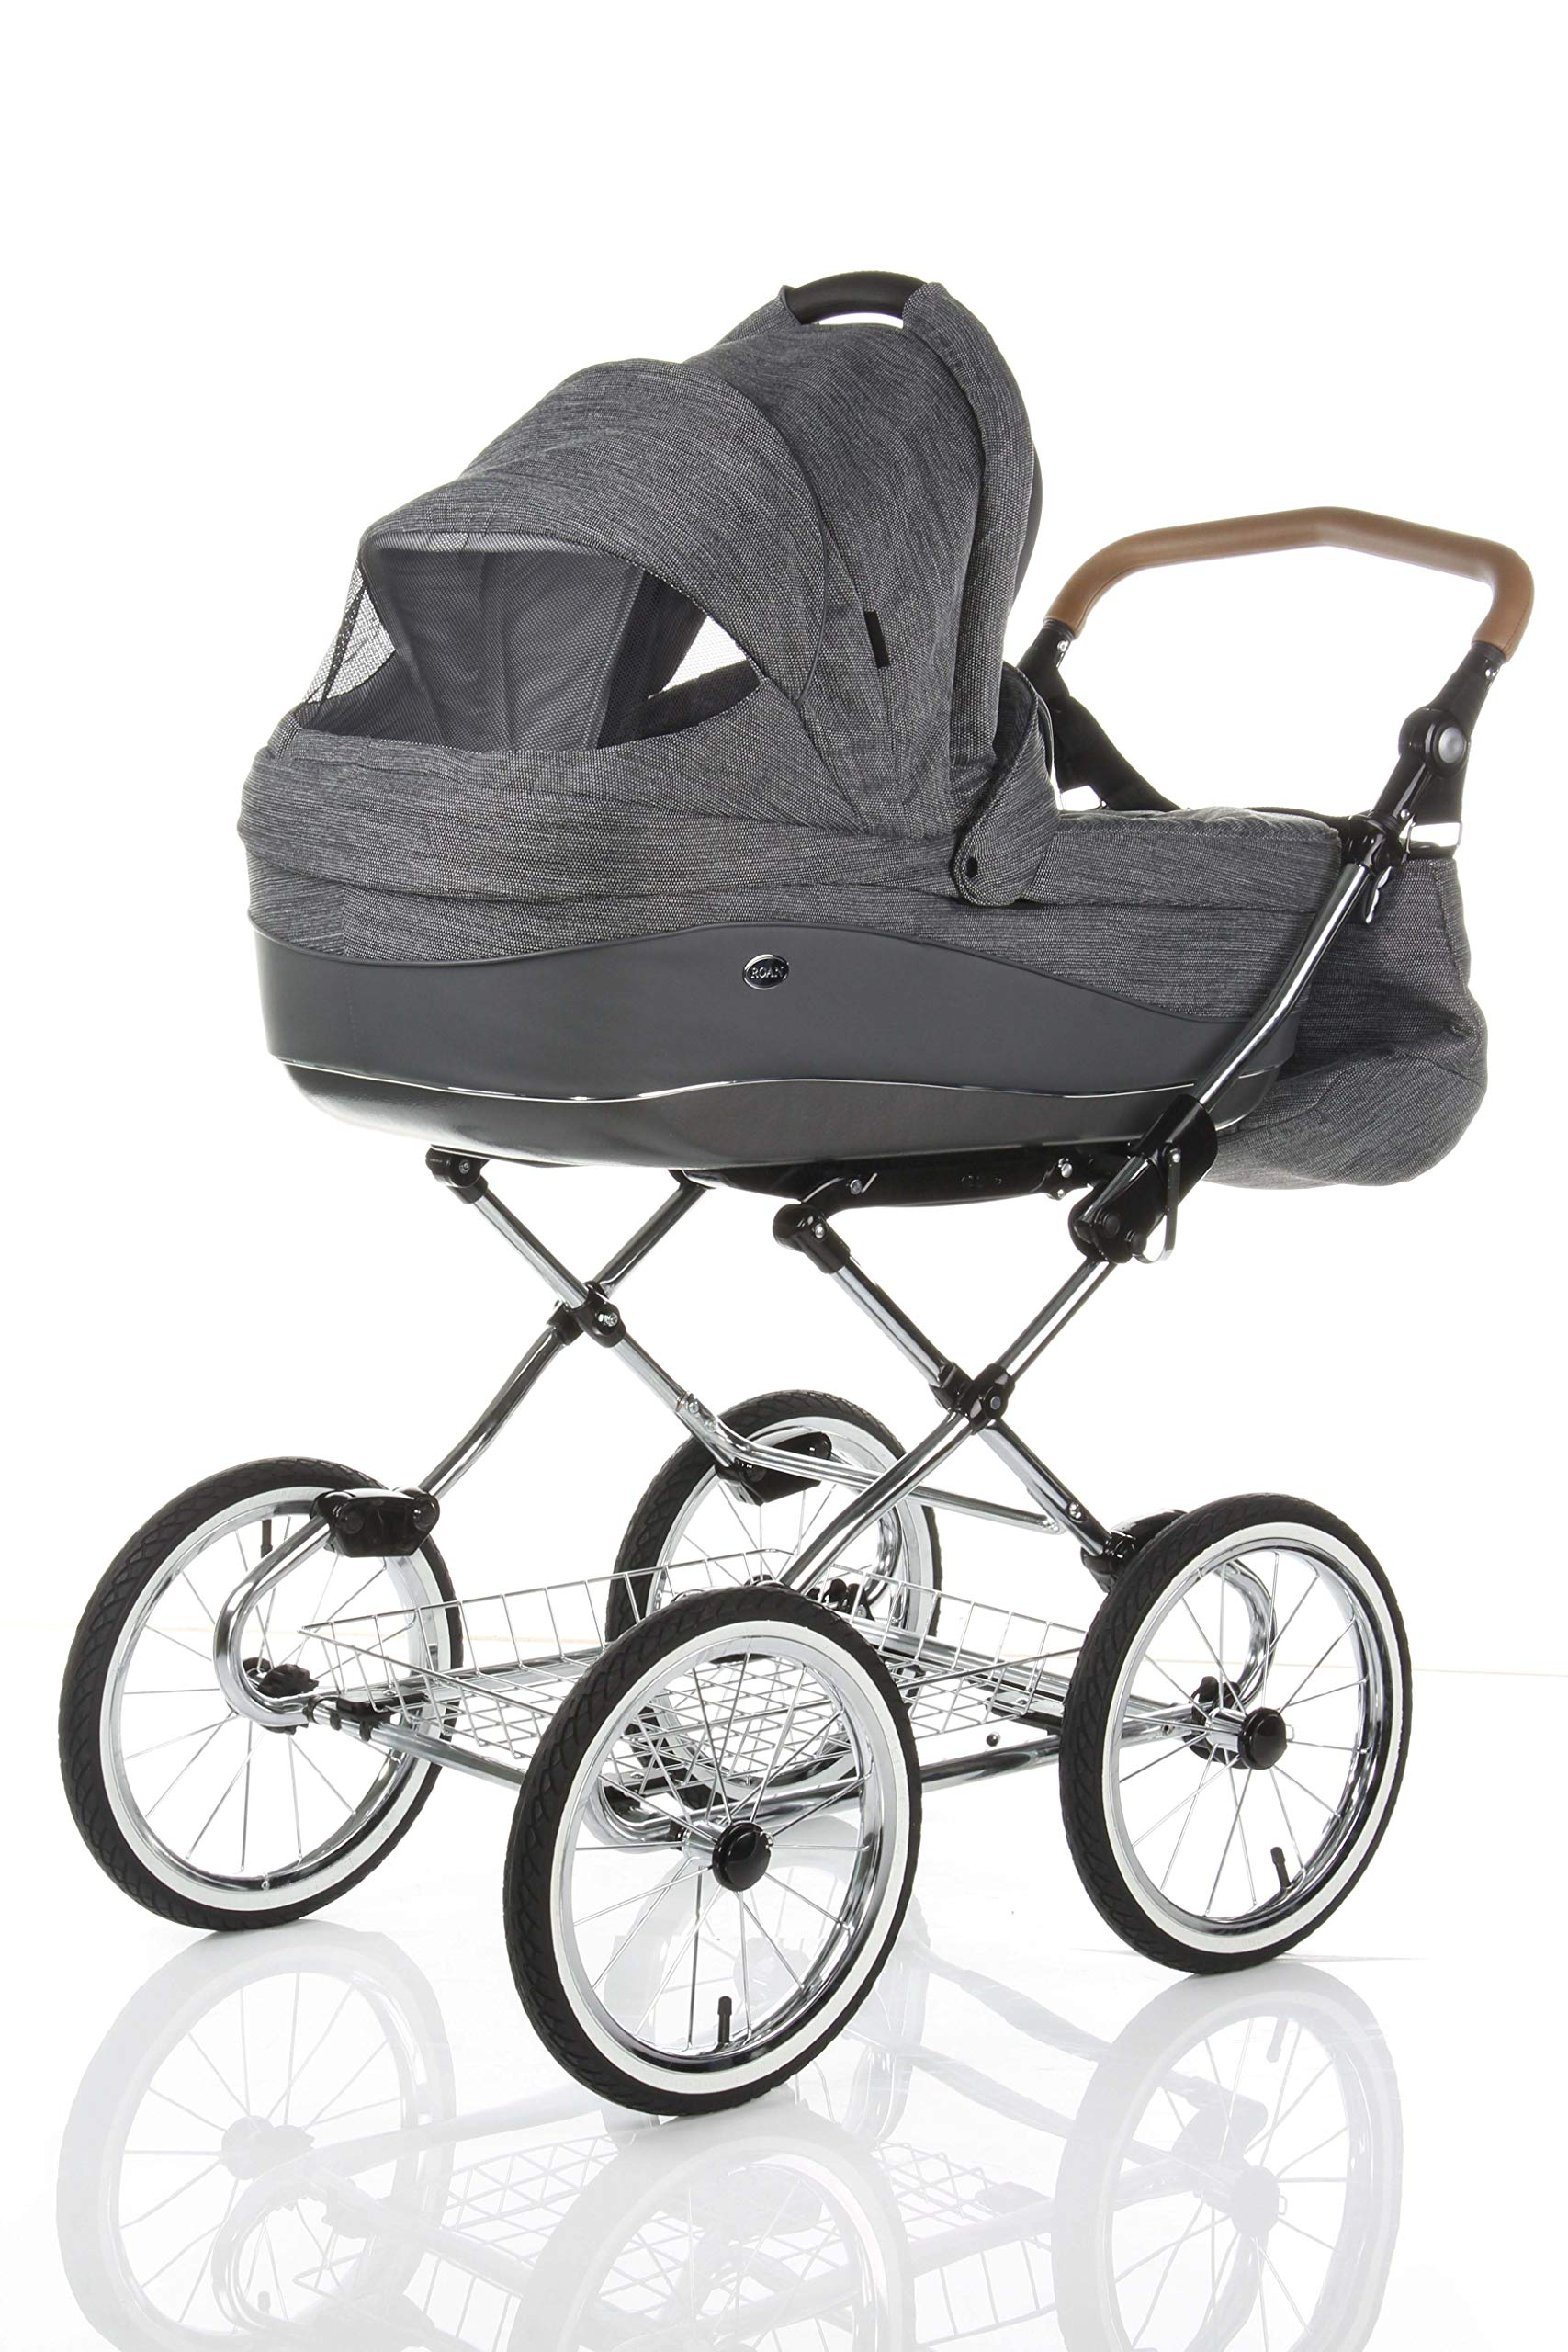 Children's Pram Buggy Stroller Combination Car seat Classic Retro Baby Carrier ROAN Emma (E-81 Dark Grey Melange-Grey Leather, 2IN1) JUNAMA Frame / wheels Sturdy and lightweight aluminum frame construction with folding function 1-click system for easy assembly and disassembly Practical carrying handle for easy storage of the folded frame Wheels for inflating (14 inch) removable wheels Brake system with central brake Height-adjustable push handle - 10-fold matching shopping basket Dimensions folded with wheels: 86 x 60 x 40 cm folded without wheels: 76 x 60 x 26 cm Total height of the stroller to hood top: 106 cm Height of the tub from the ground: 60 cm Wheelbase External dimensions: 80x 58 cm Variable height of the push handle: 77- 119 cm Weight of the frame incl. Wheels and carrying bag 15 kg Carrycot Length and width of carrycot outside: 88 x 42 cm Carrying bag length and width inside: 76 x 35 cm Sturdy plastic tub with comfortable mattress and side protection Ventilation slots on the plastic tub The baby car seat 0-13 kg Maxi-Cosi in black incl. Adapter 2